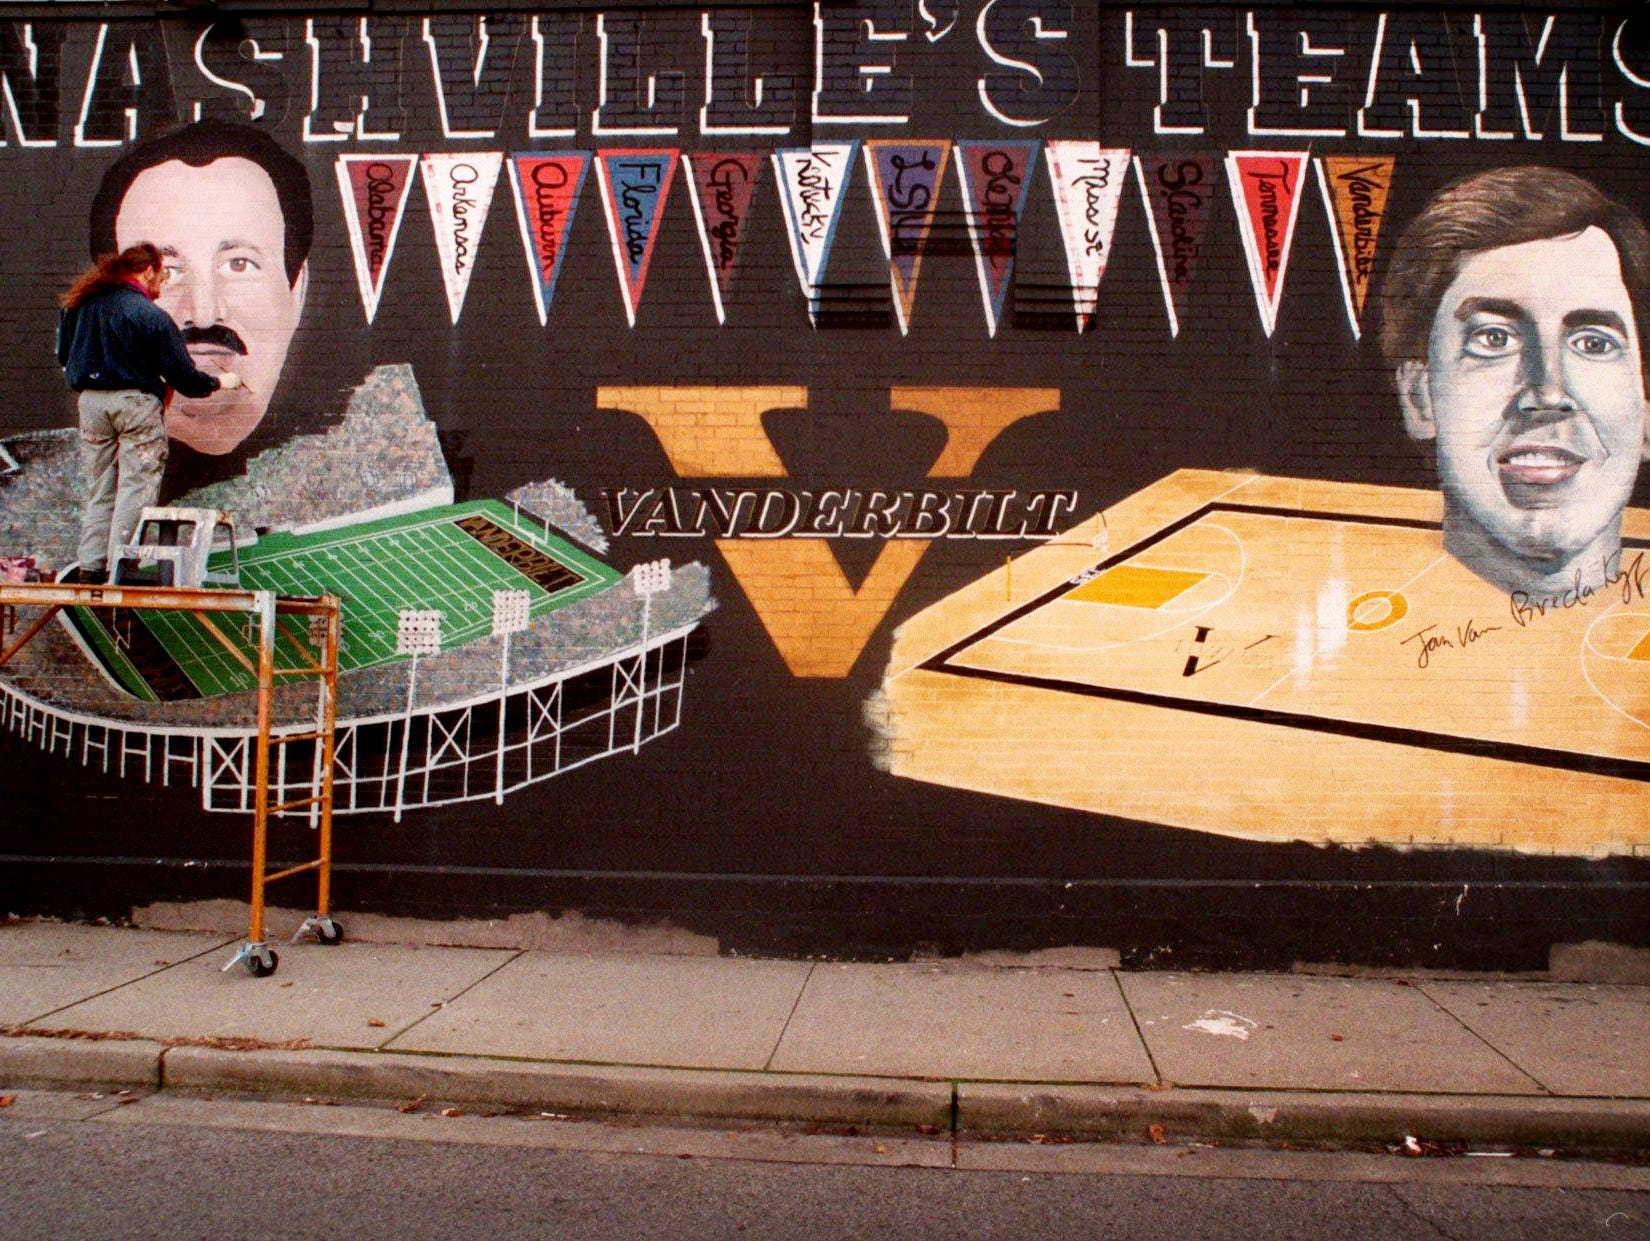 In 1996 Michael Cooper painted football coach Woody Widenhofer on the Vanderbilt mural on the wall of the building, which at the time was occupied by You Greek Me Greek.